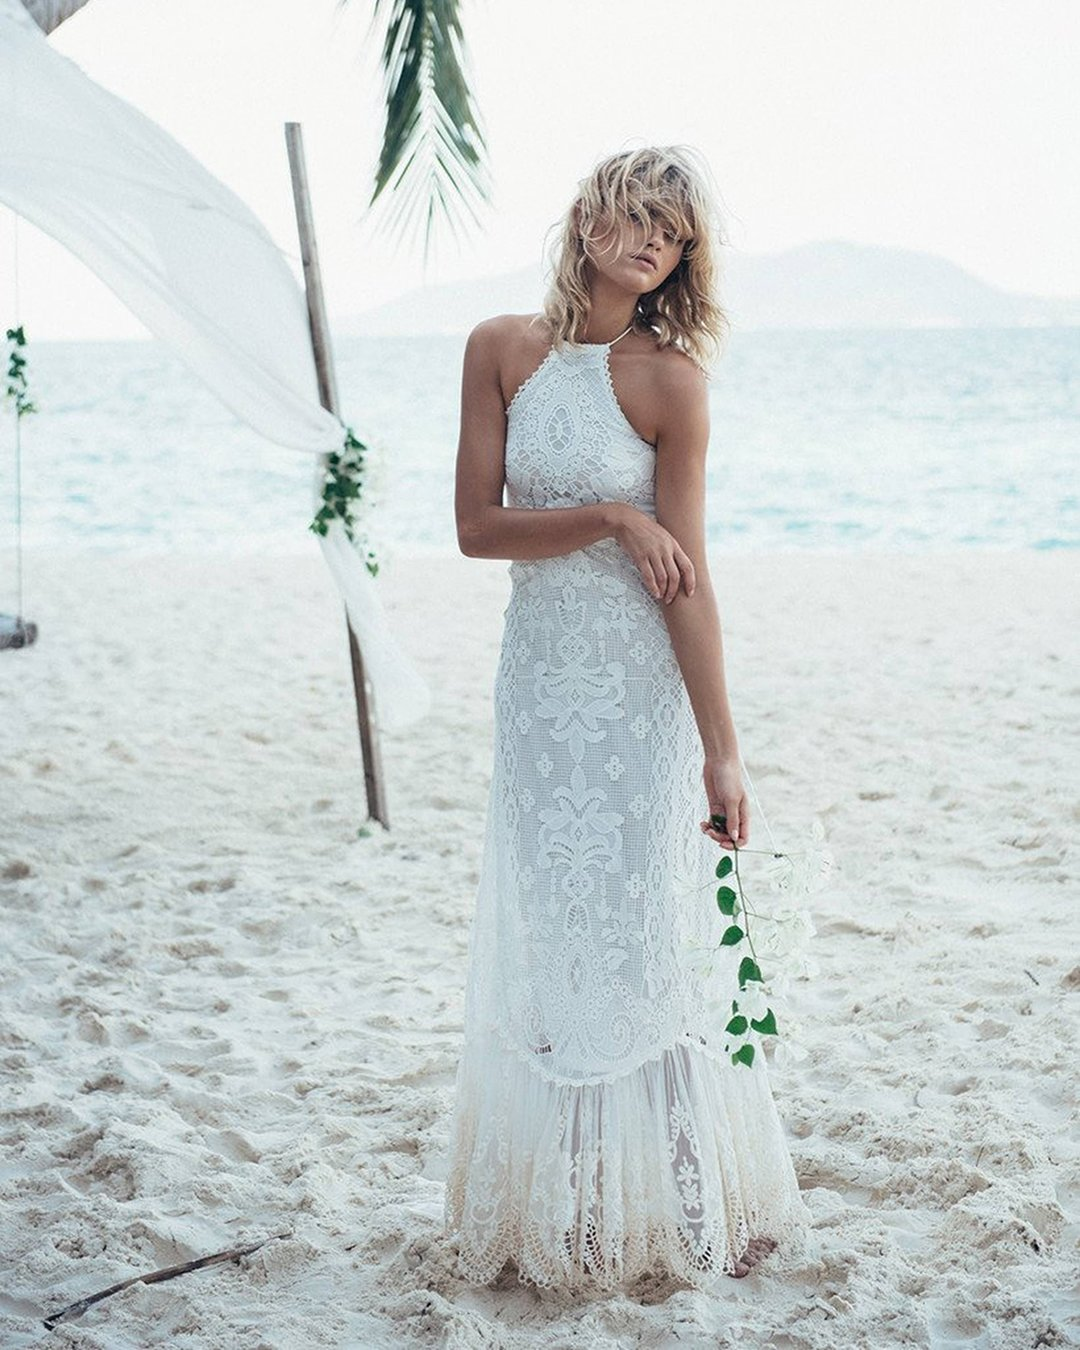 beach wedding dresses sheath bohemian hippie lace johnny photo